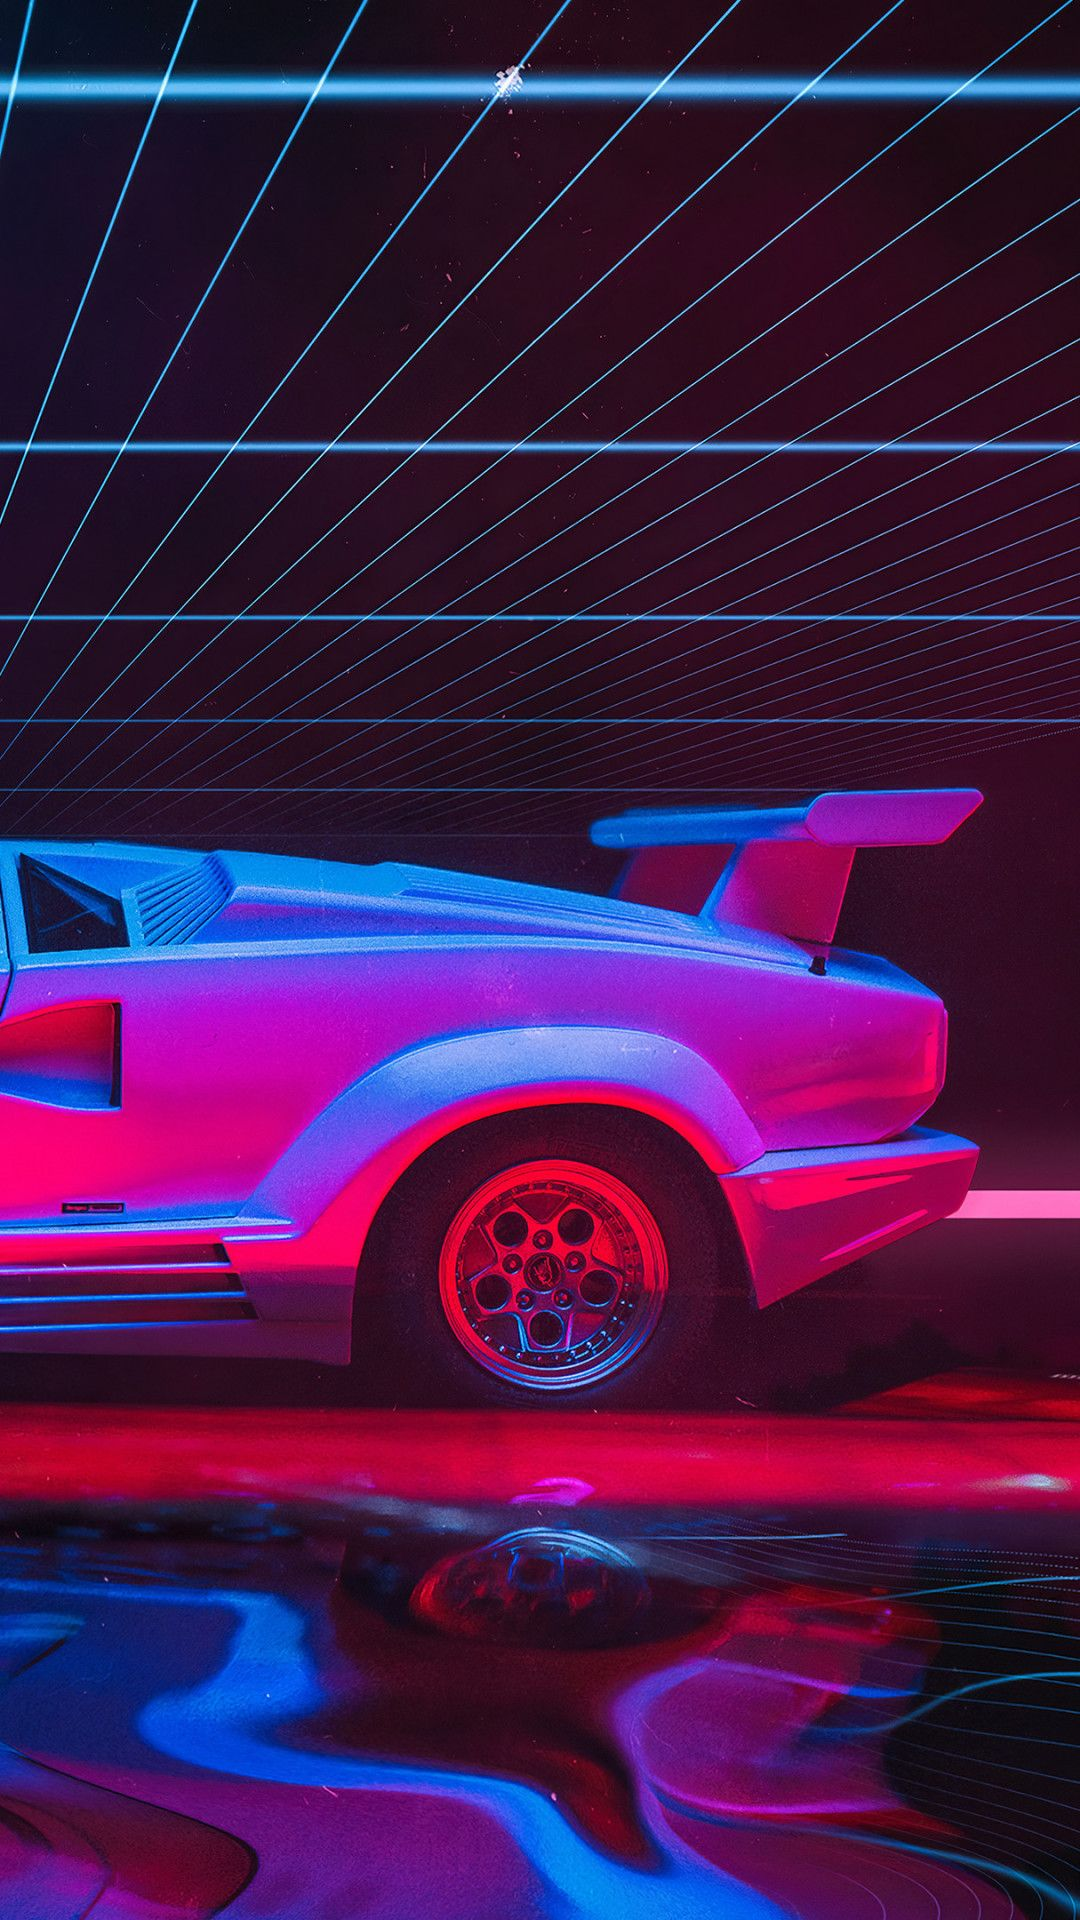 Lamborghini Countach Abstract Art 4k Mobile Wallpaper Iphone Android Samsung Pixel Xiao Lamborghini Wallpaper Iphone Lamborghini Countach Mobile Wallpaper